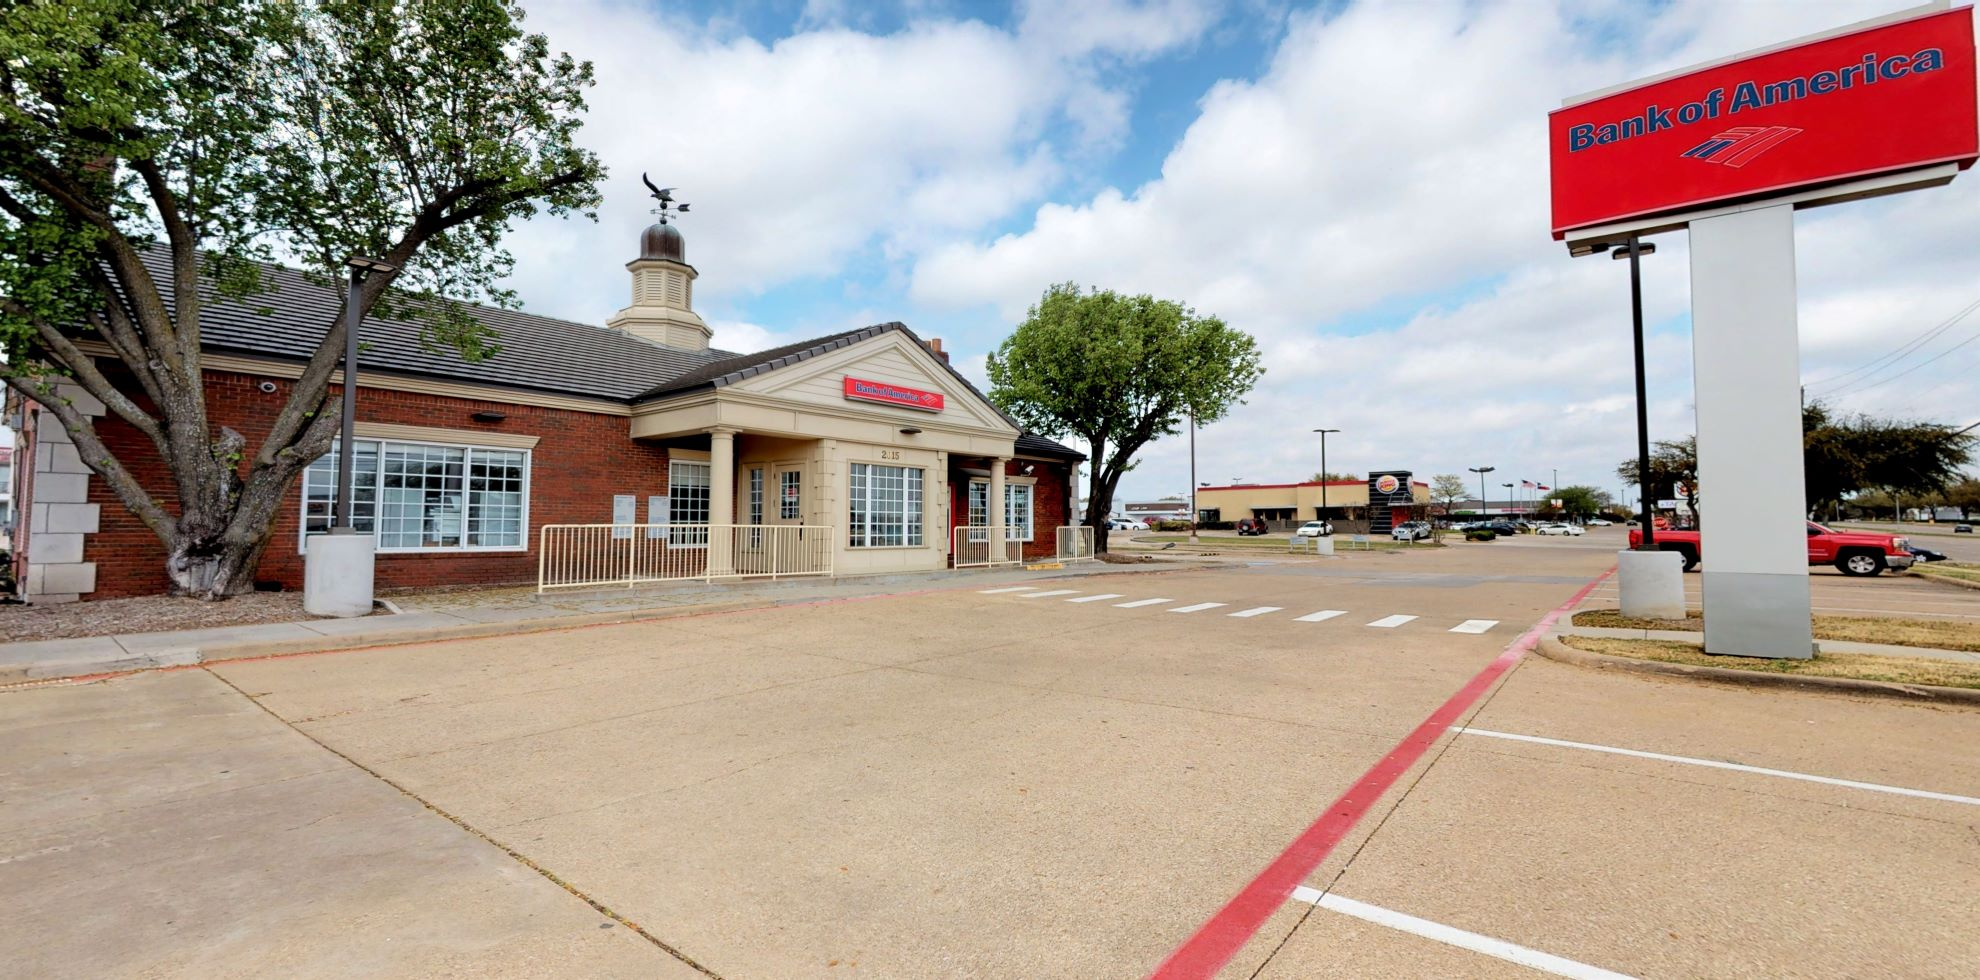 Bank of America financial center with drive-thru ATM | 2015 Coit Rd, Plano, TX 75075